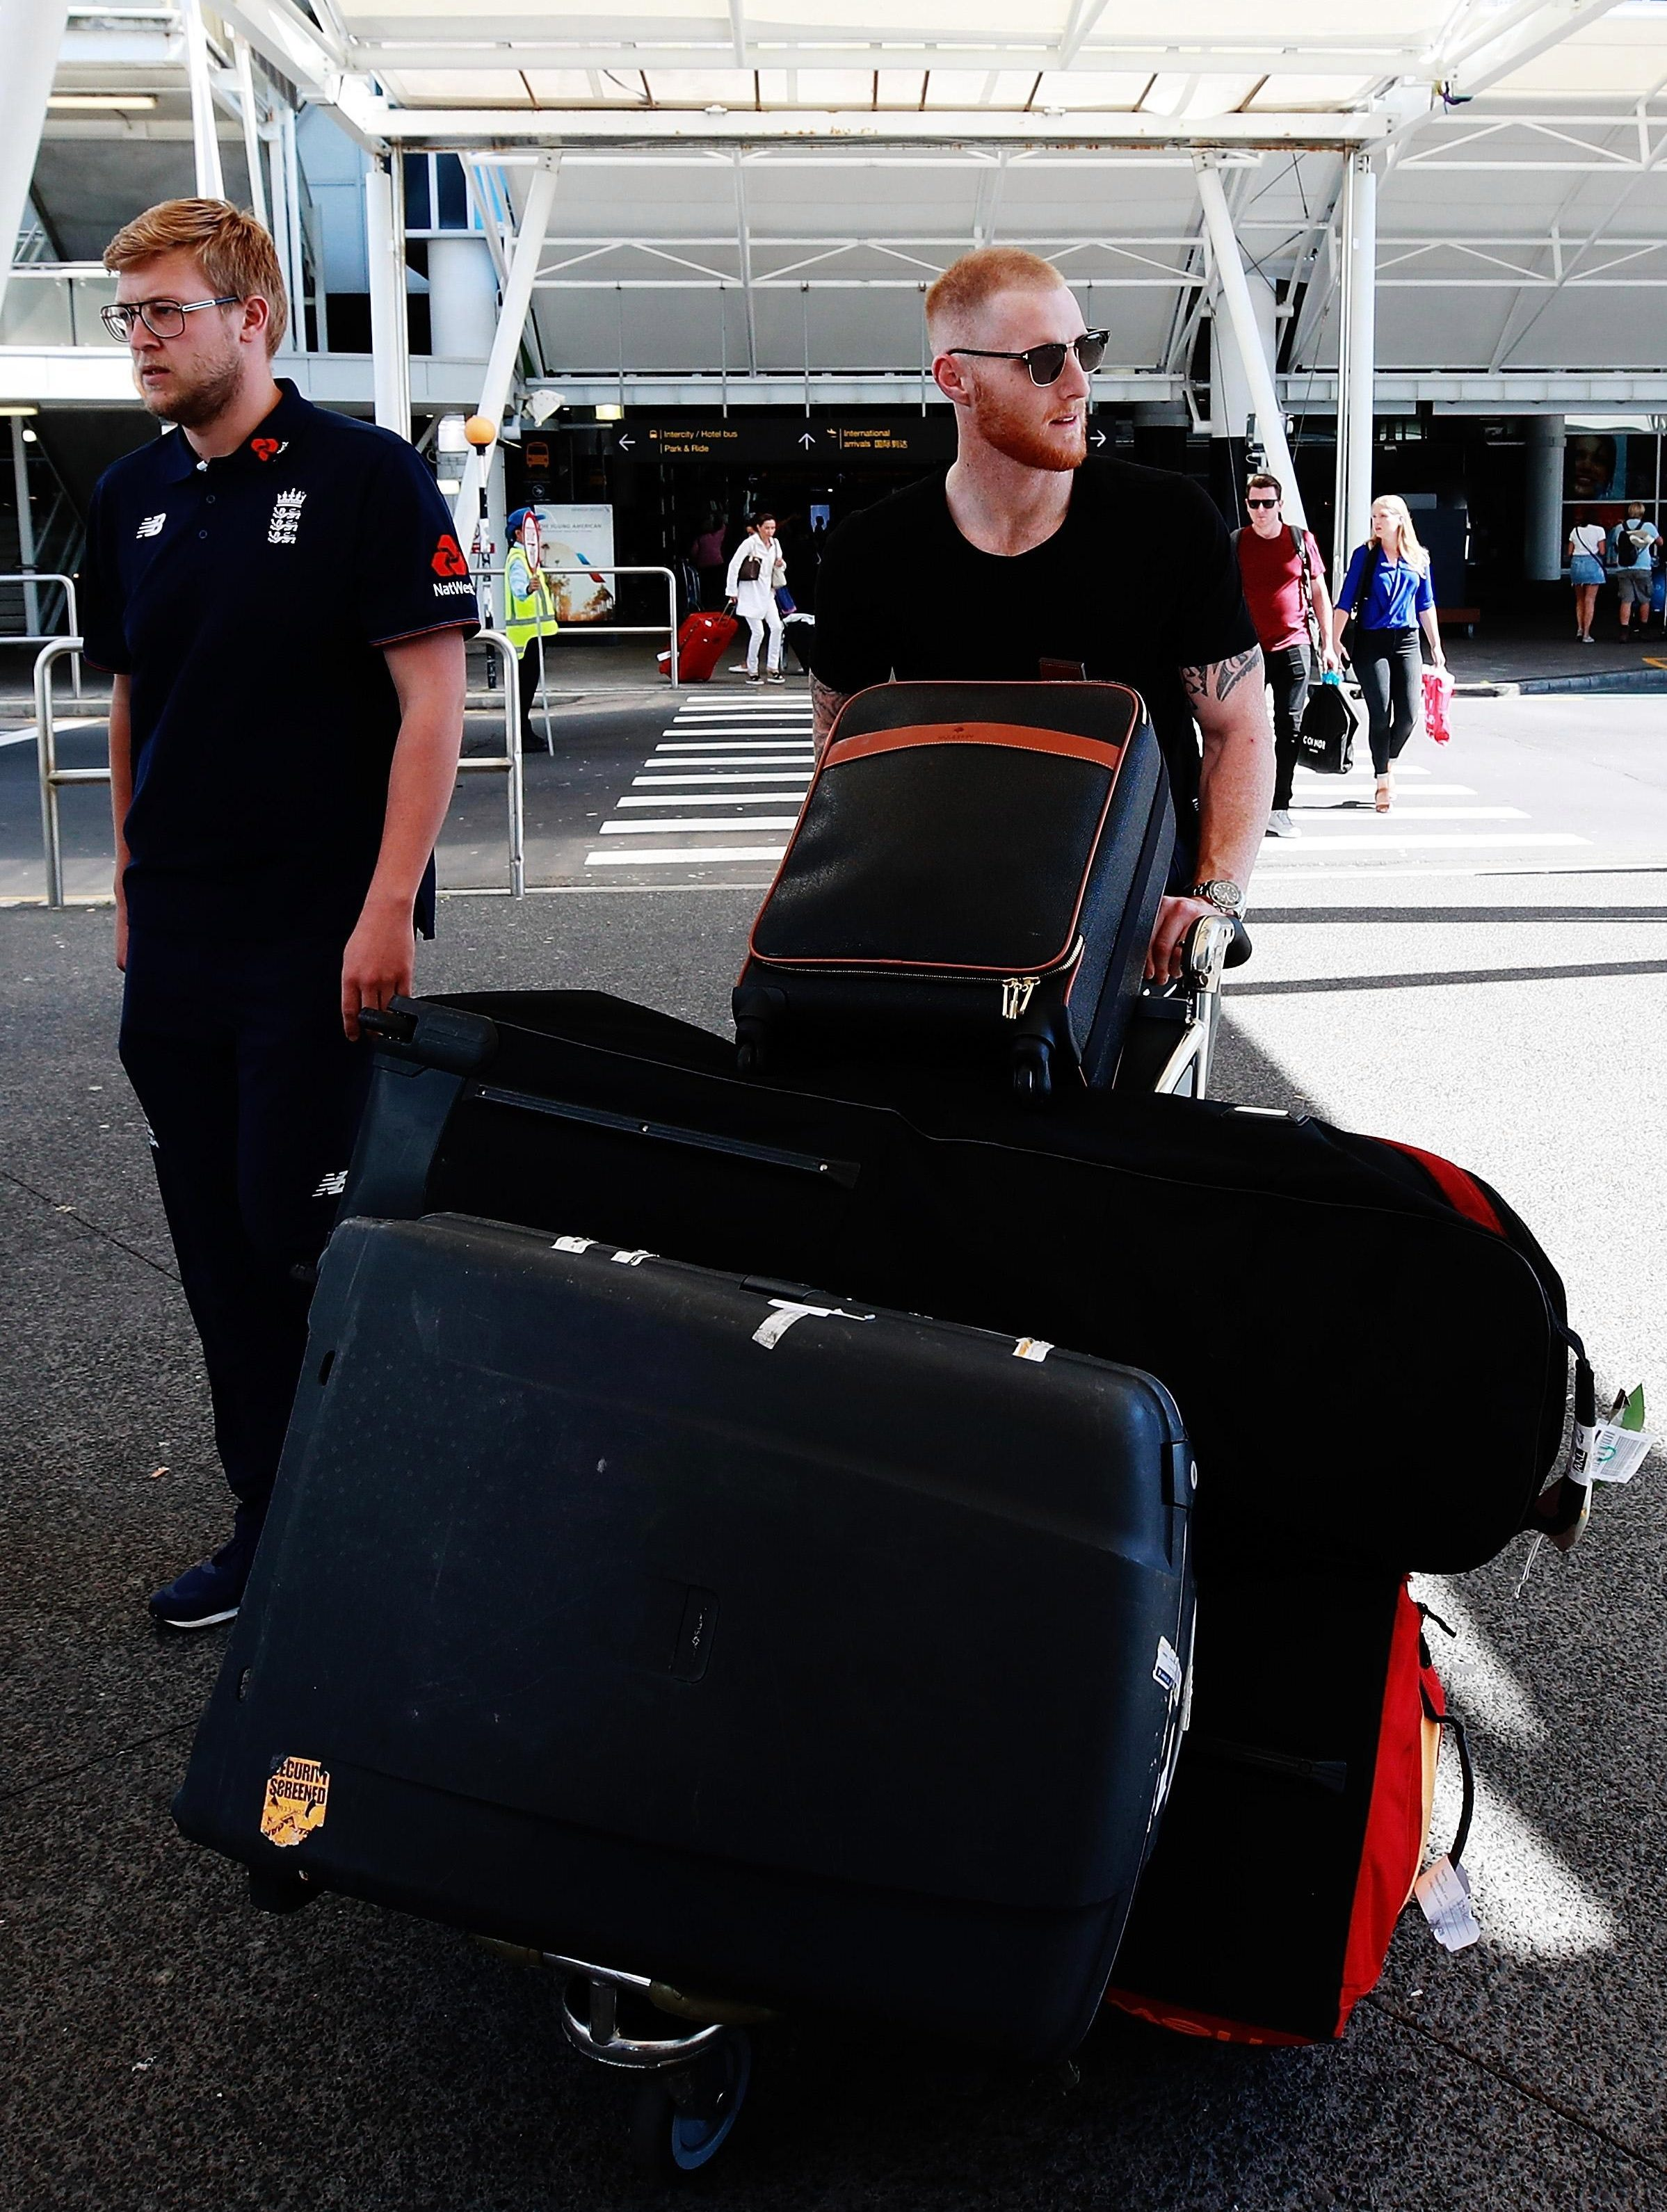 Stokes has a fairly hefty set of equipment with him as he wheels his equipment out of the airport terminal